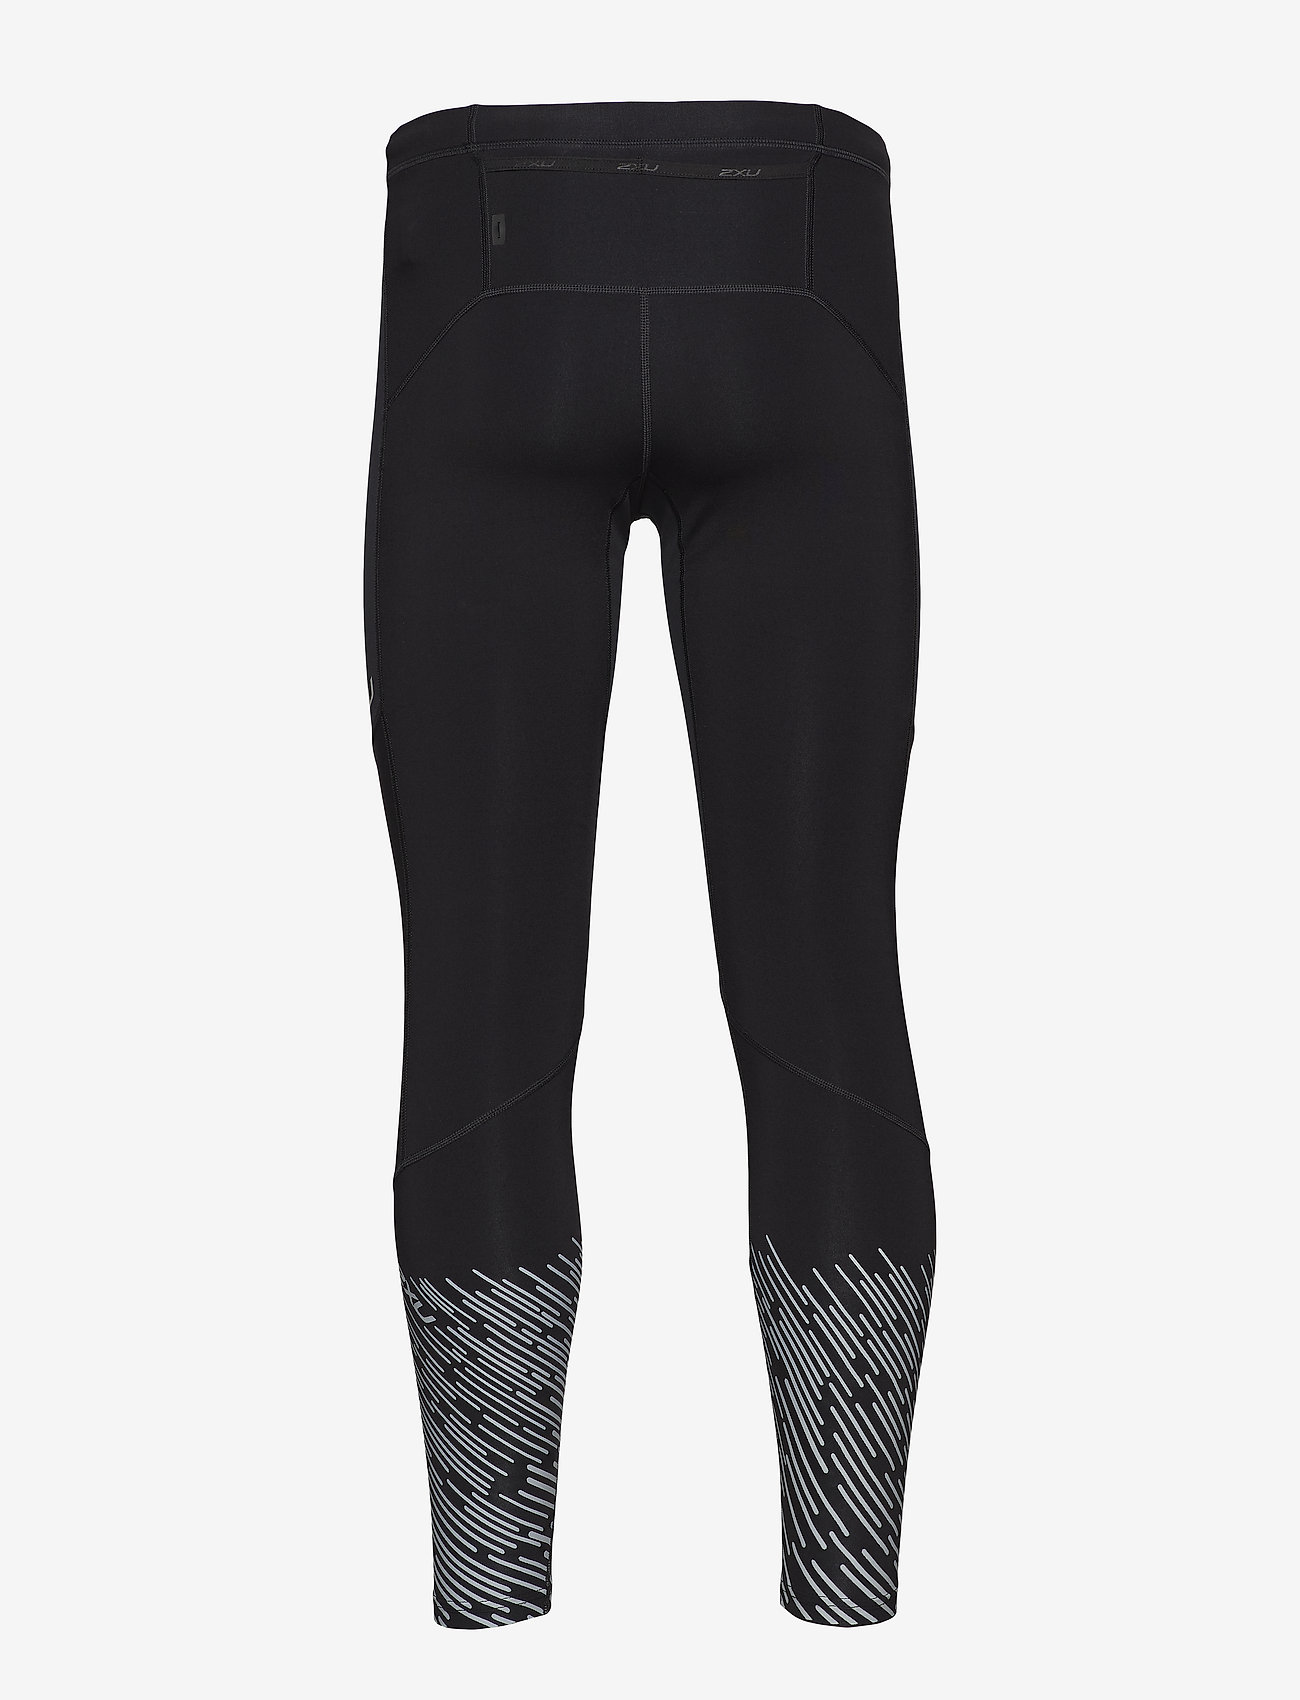 Wind Defence Comp Tights (Black/silver Lightbeams Reflective) - 2XU hczc2D